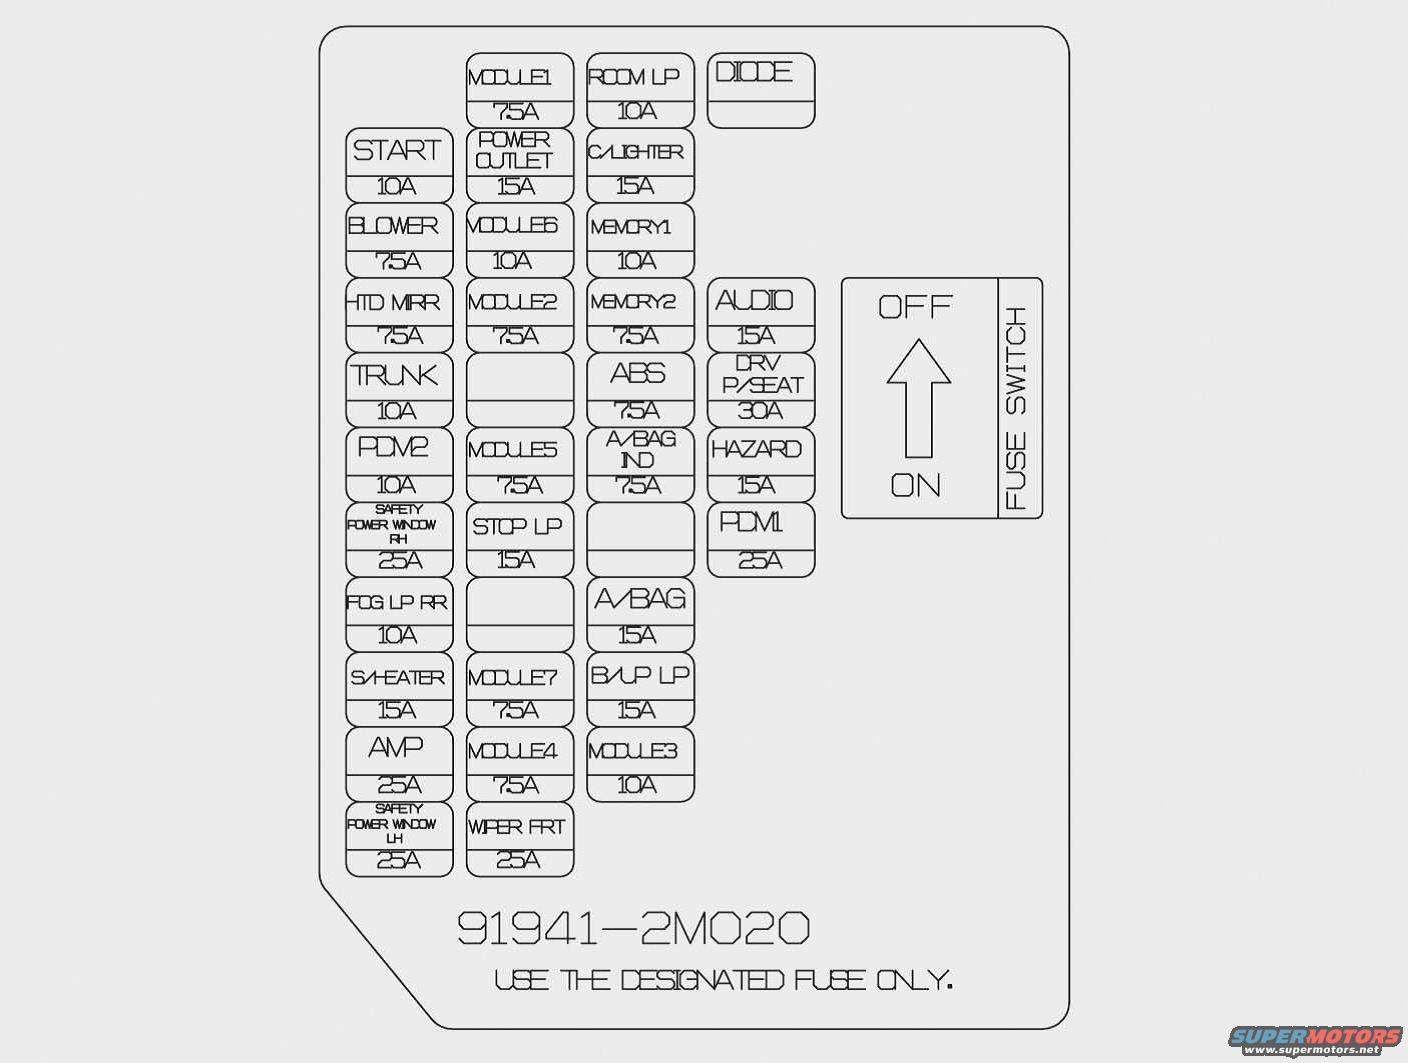 2007 Hyundai Entourage Fuse Box Diagram Schematics Data 2012 Santa Fe Xg350